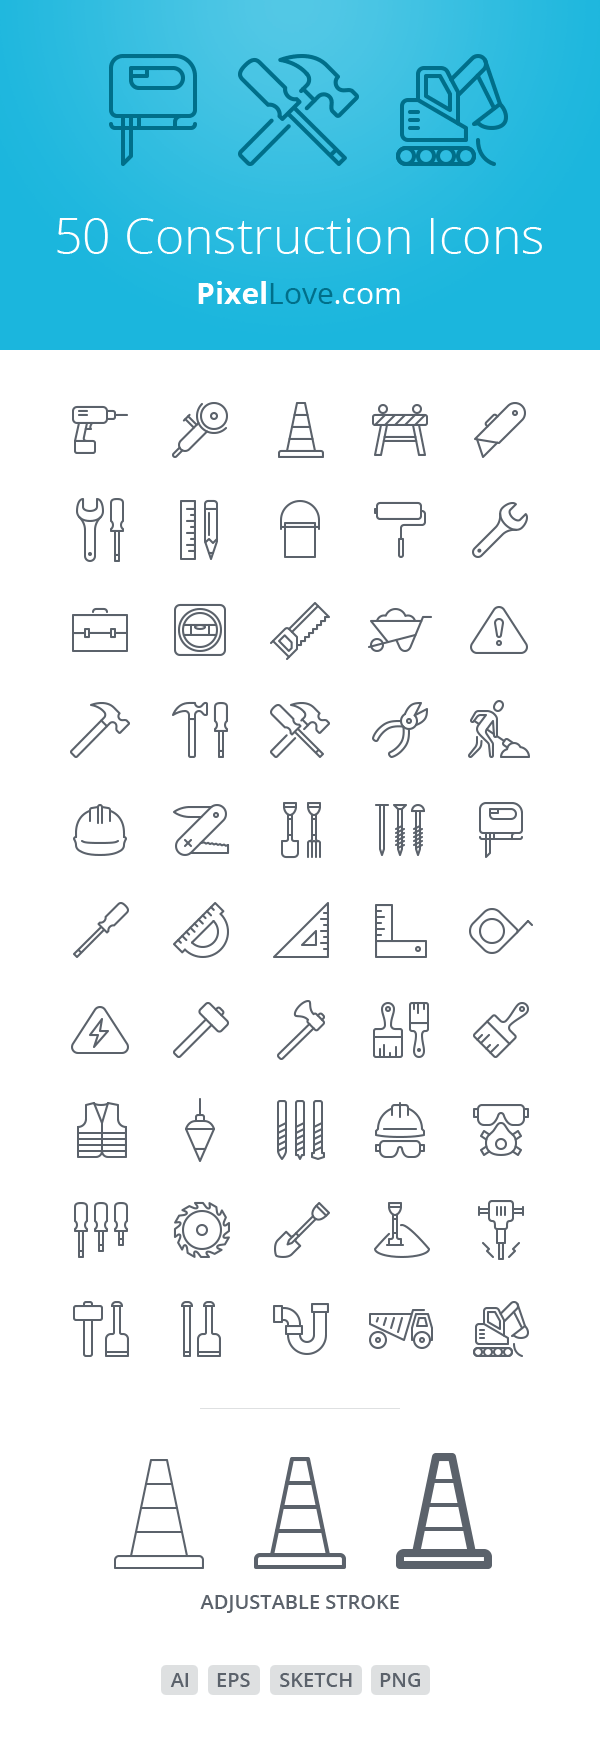 50 Construction Icons for iOS 8 | GraphicBurger